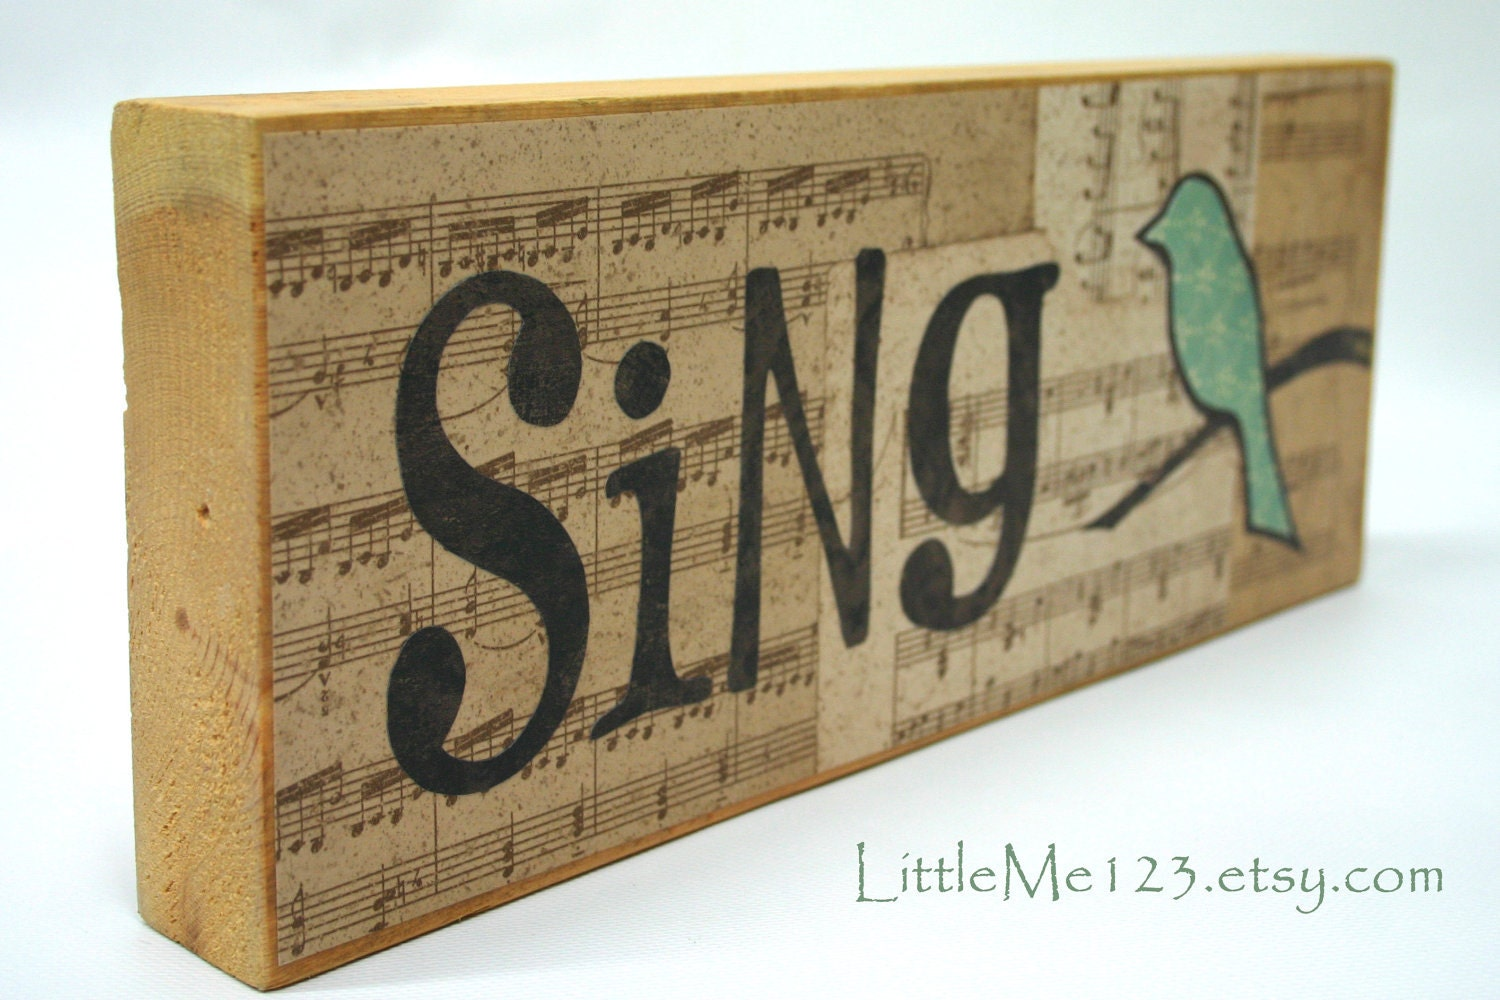 BlockHead Design - Sing Bird Wood Block - Hand Cut Letters - on Etsy - LettersOfLoveDesigns